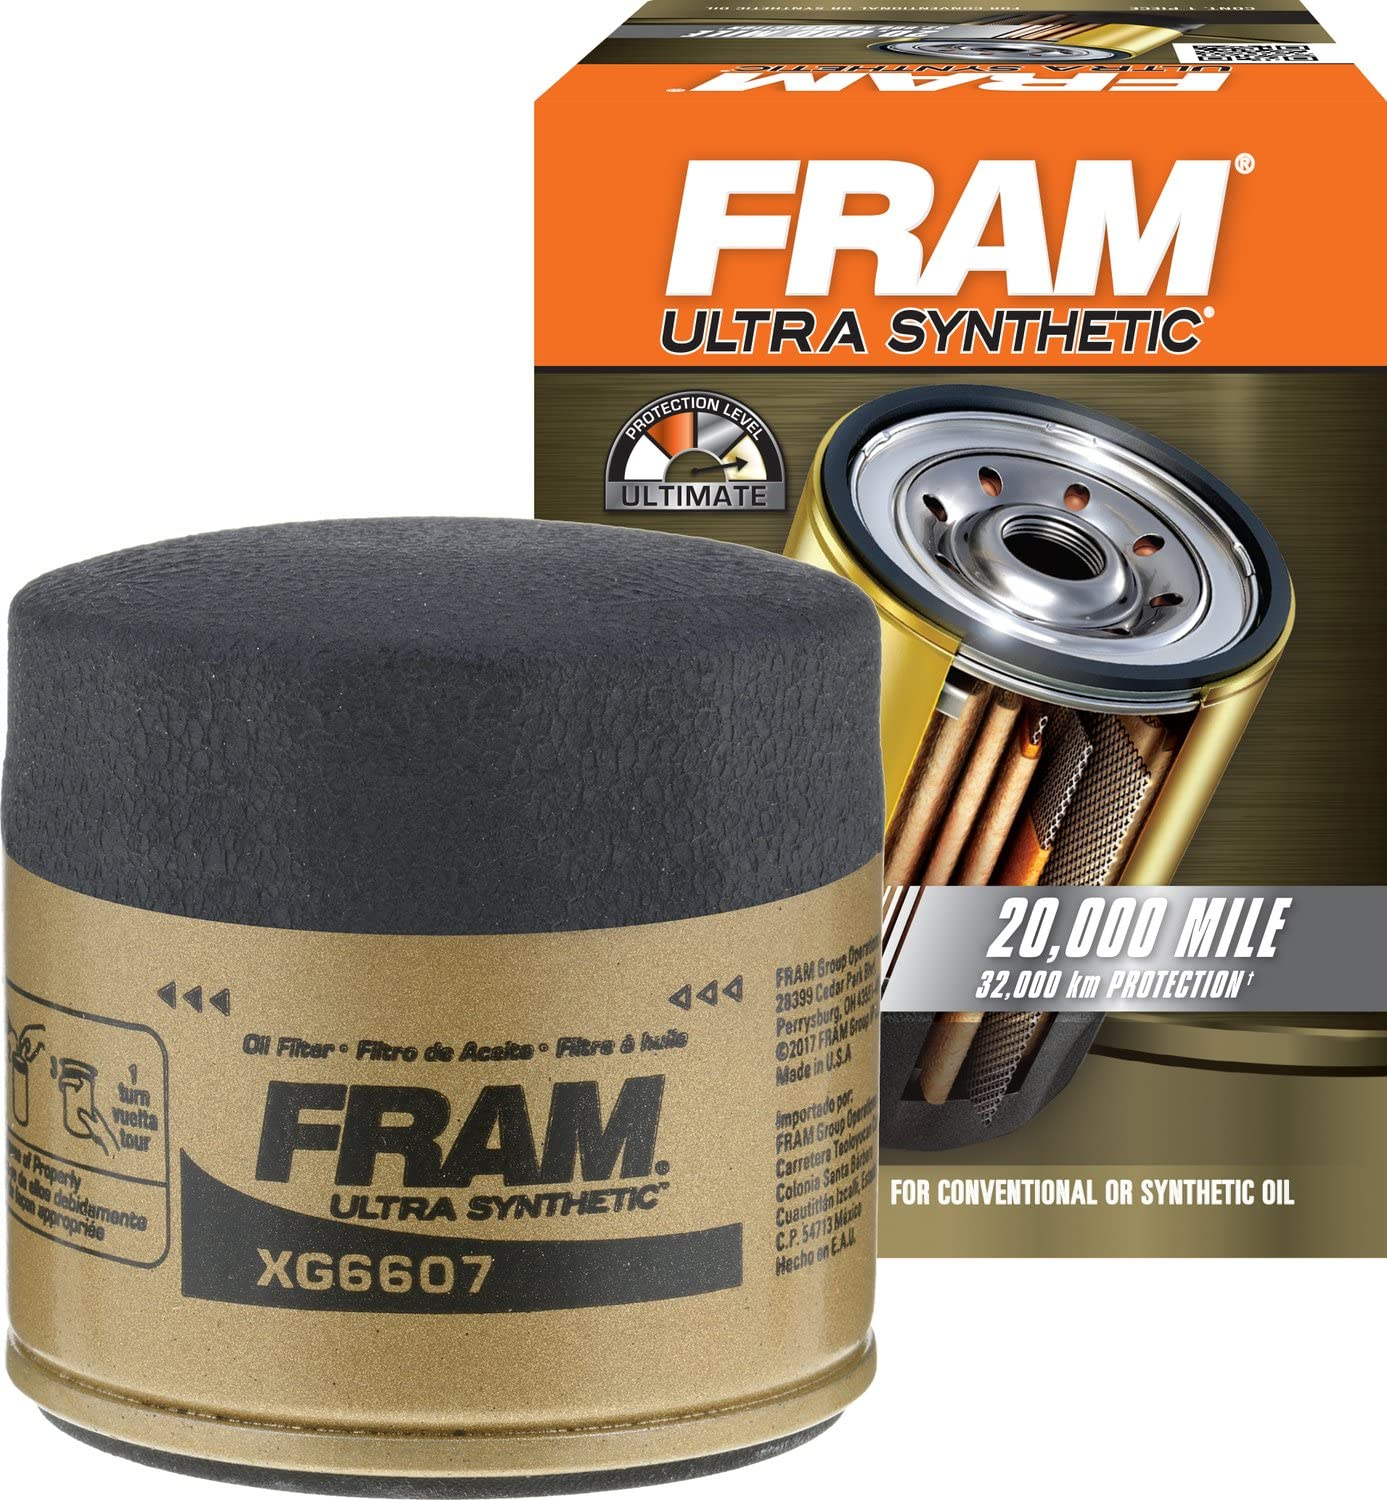 Ultra Synthetic Spin-On Oil Filter